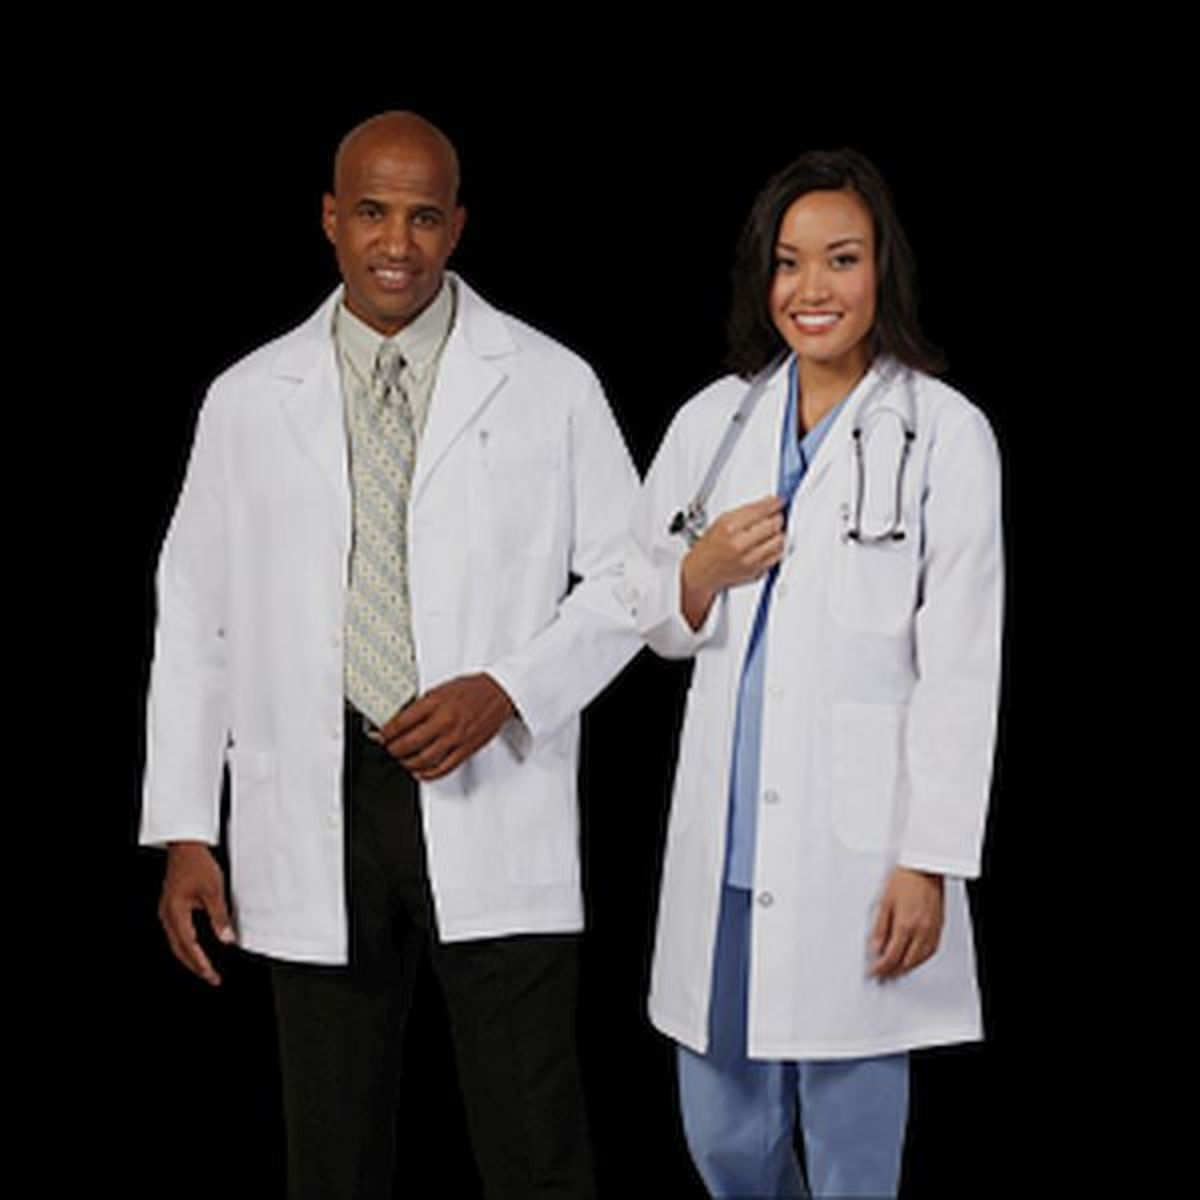 Medium length lab coats